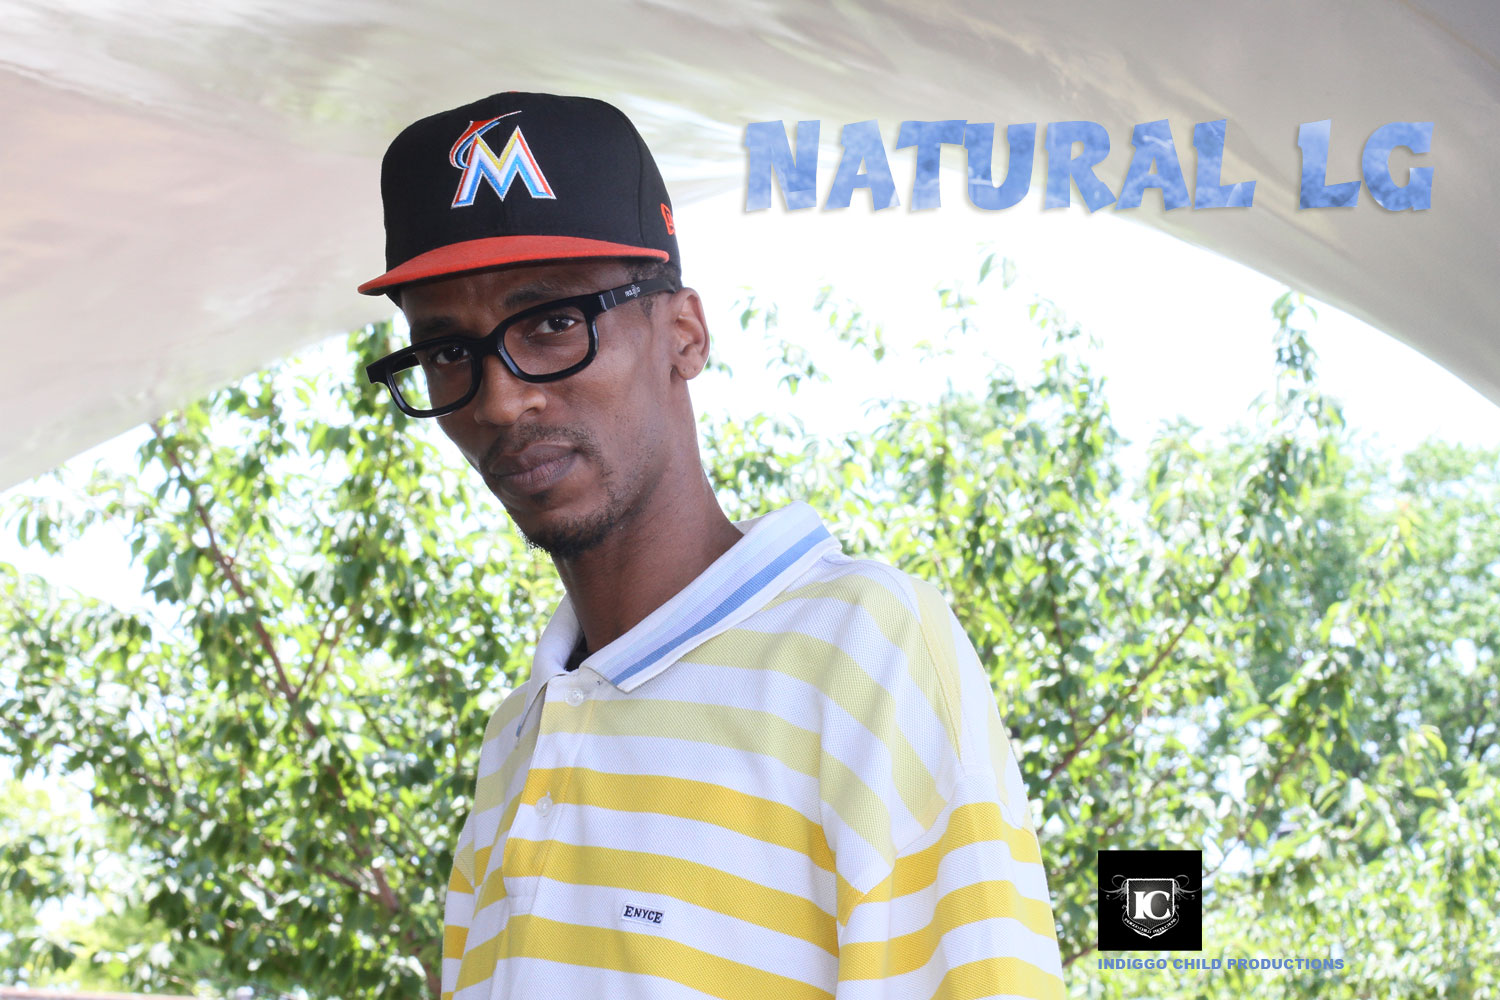 Indiggo Child Hip-Hop artist Natural LG